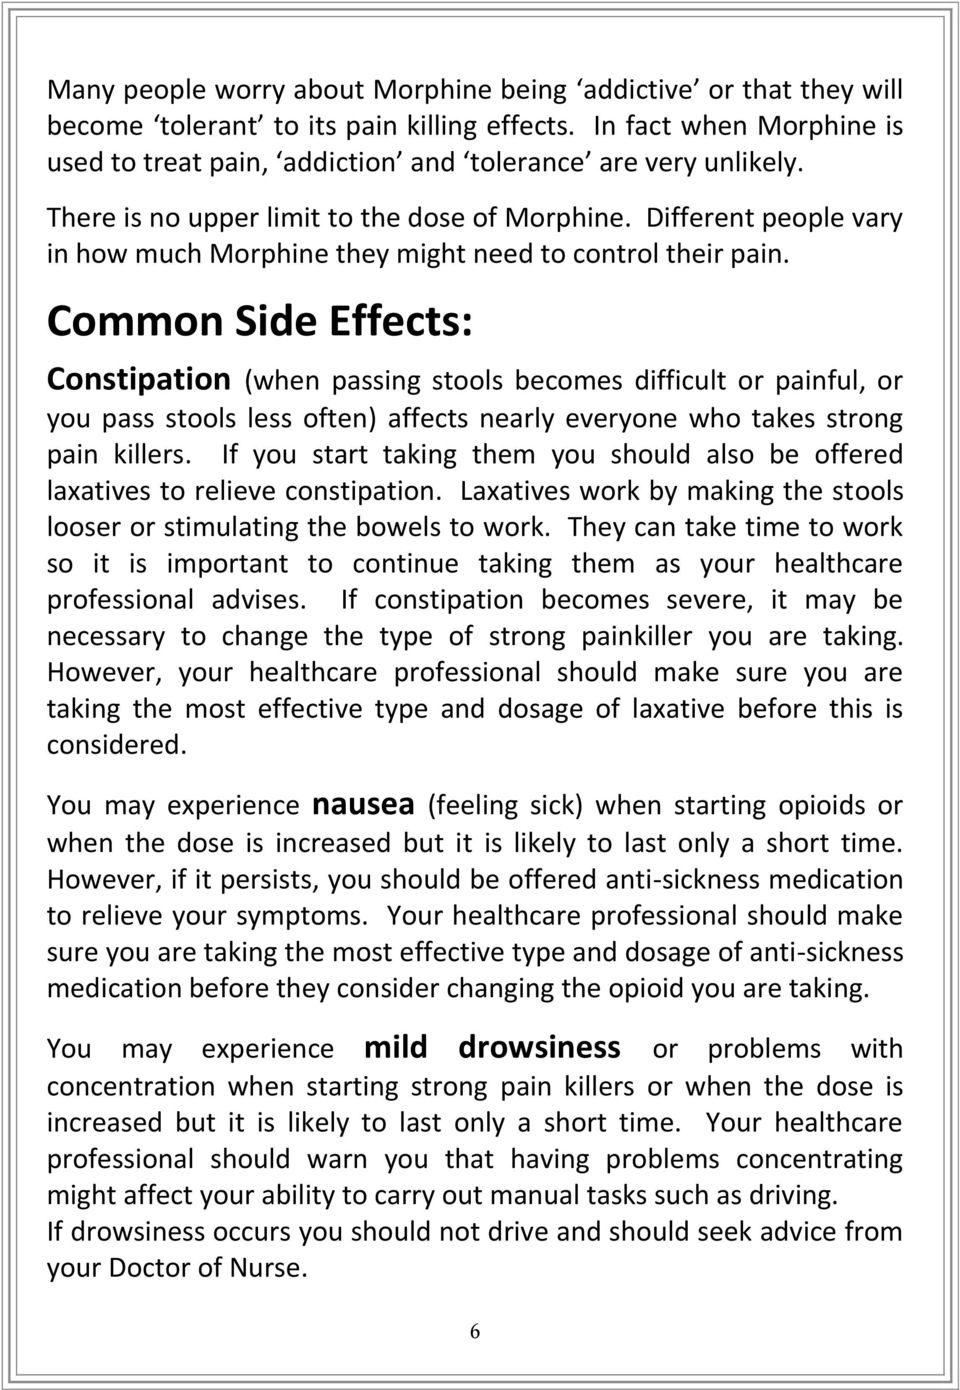 Common Side Effects: Constipation (when passing stools becomes difficult or painful, or you pass stools less often) affects nearly everyone who takes strong pain killers.